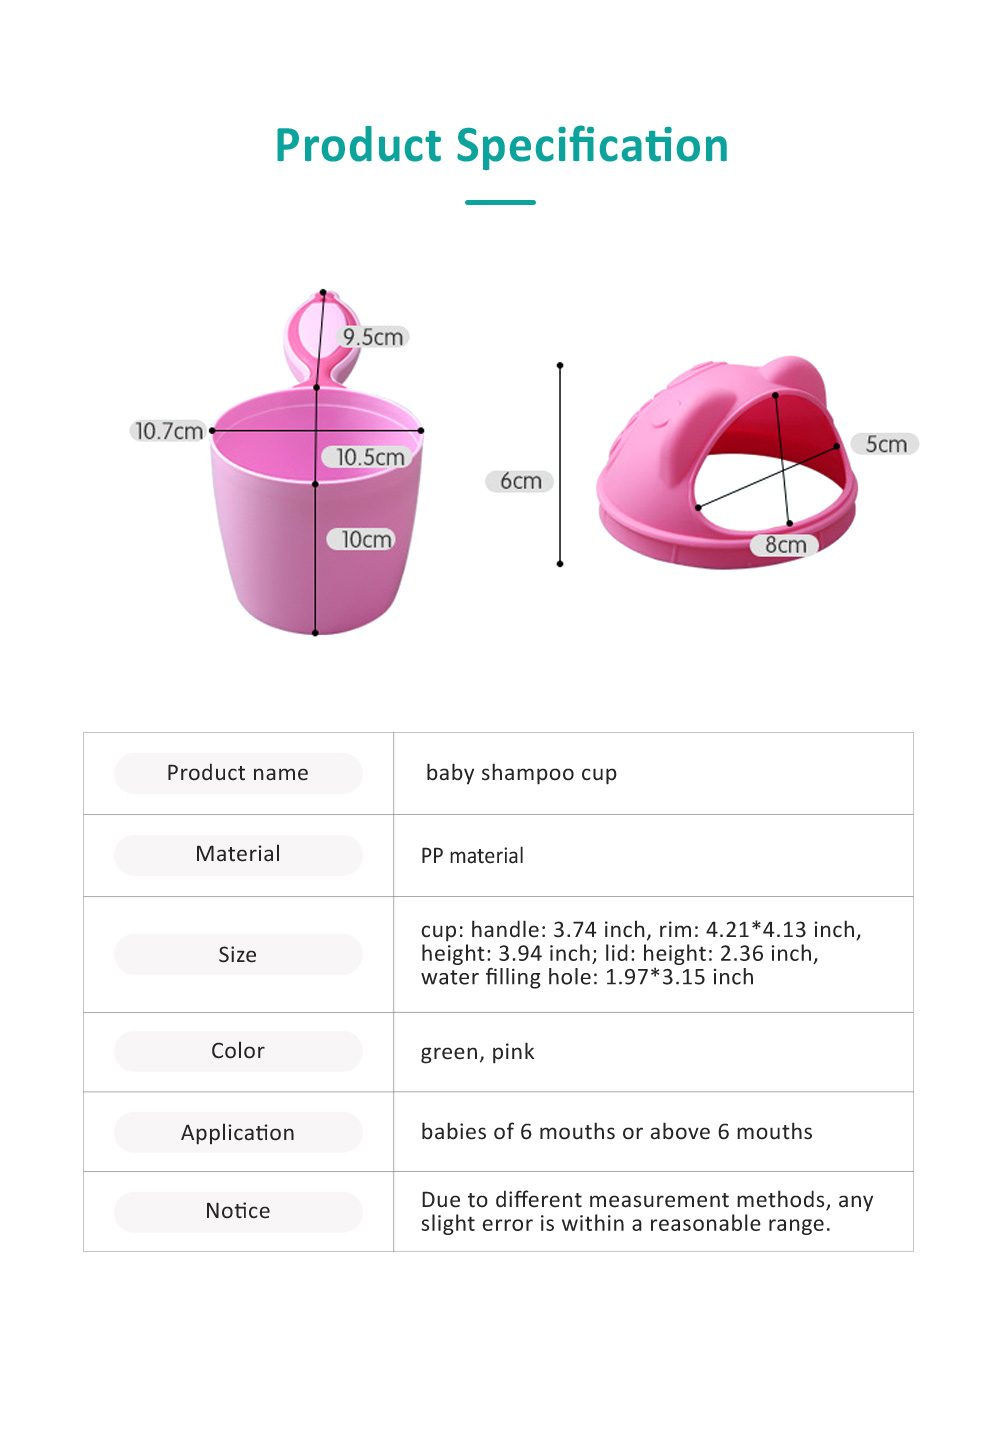 Bear Model Baby Shampoo Rinser Cup, Convenient Portable Hair Wash Bathing Flusher for Infants Shampoo Cup 7